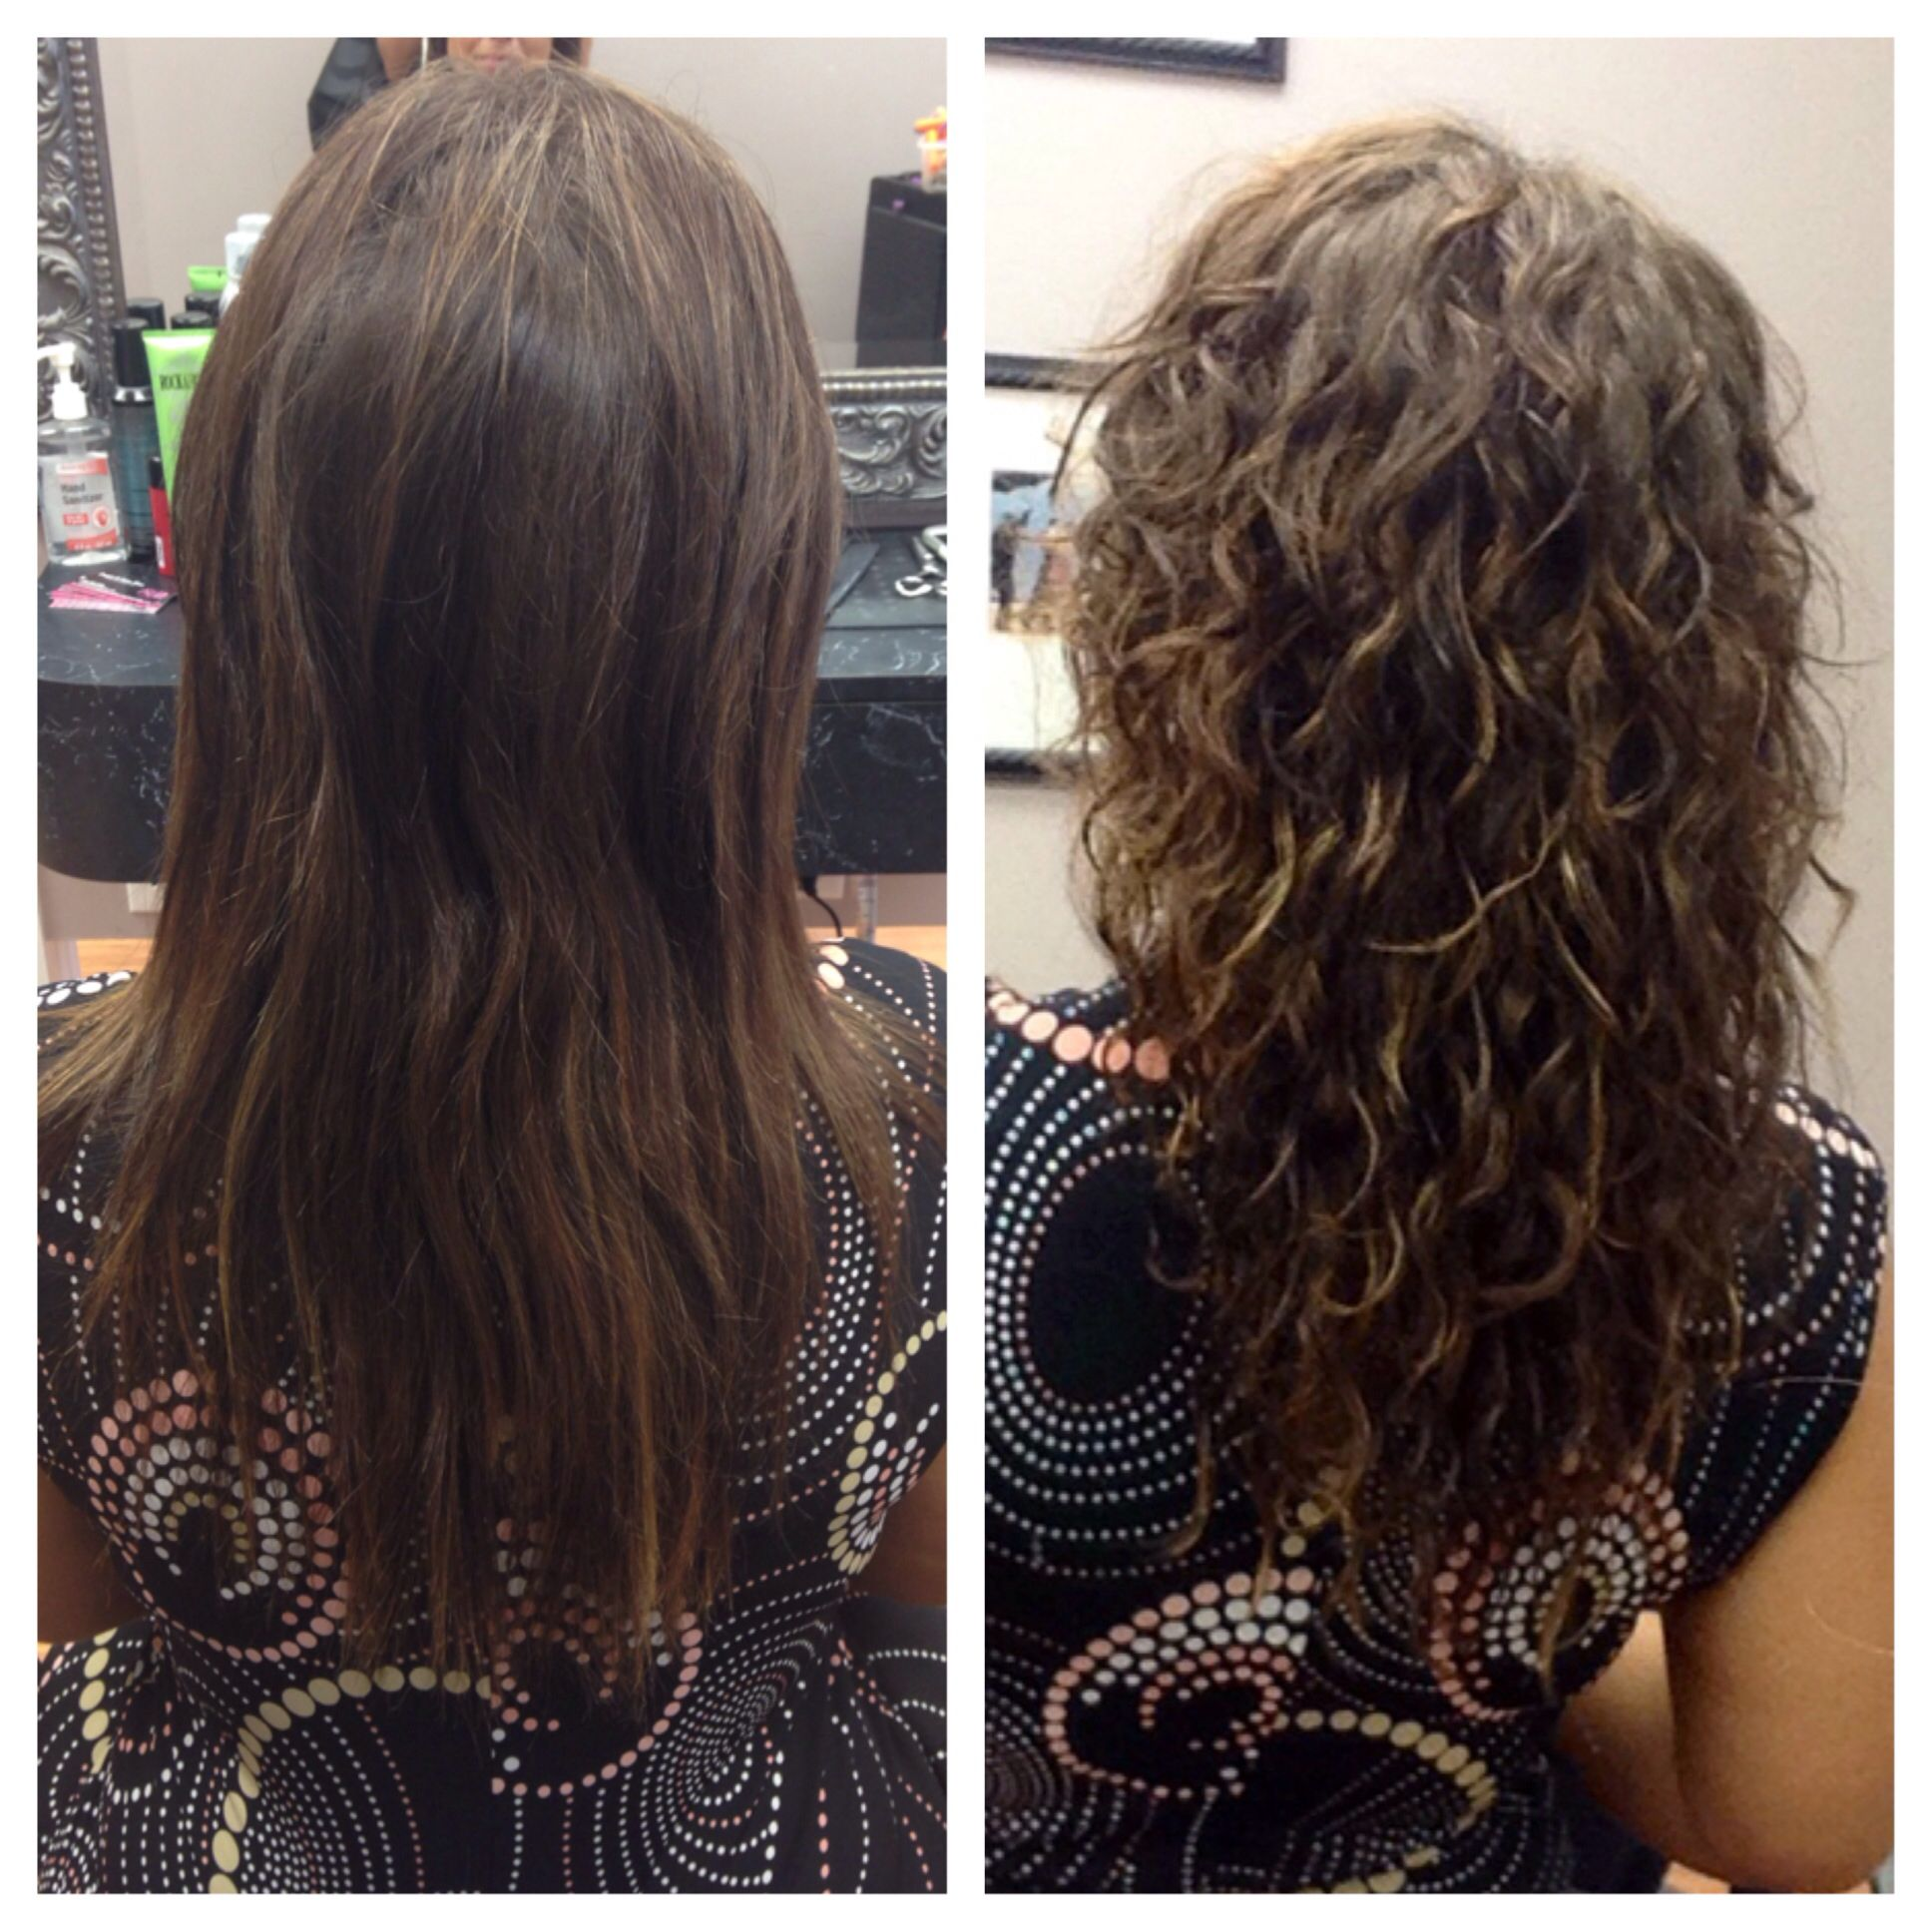 Body wave perm before and after Makeup Madness Pinterest